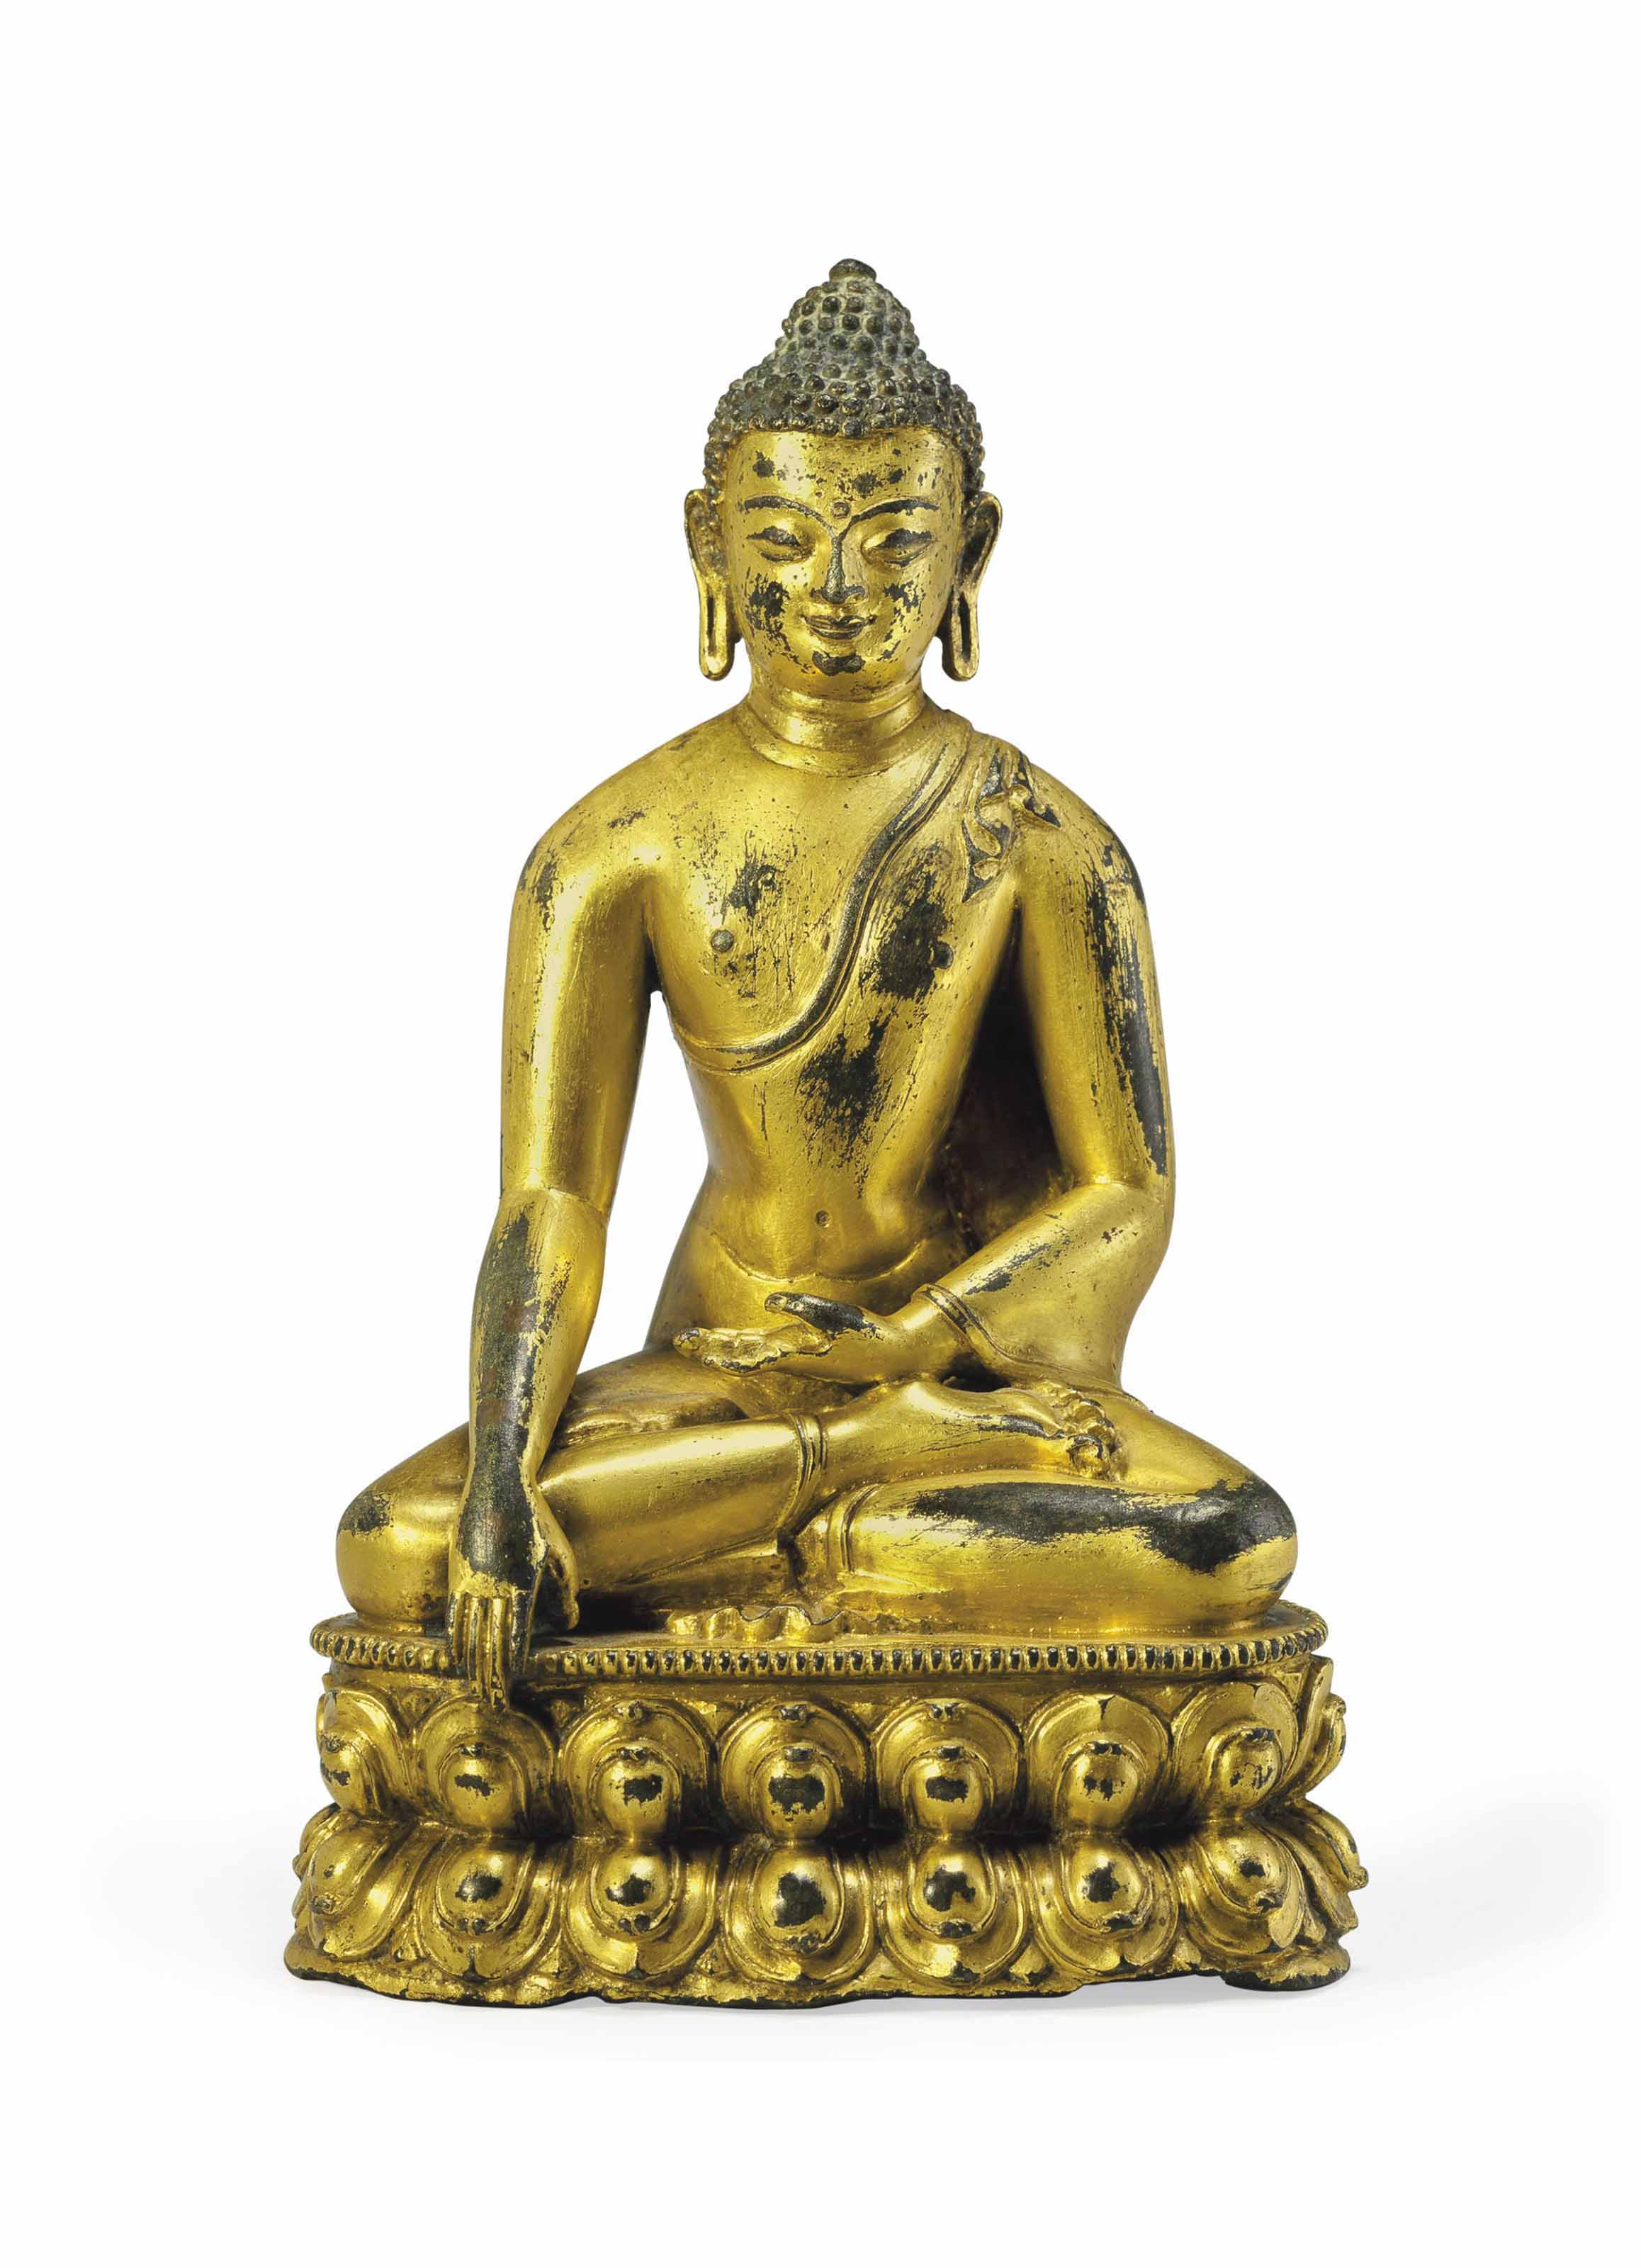 A gilt copper figure of Buddha